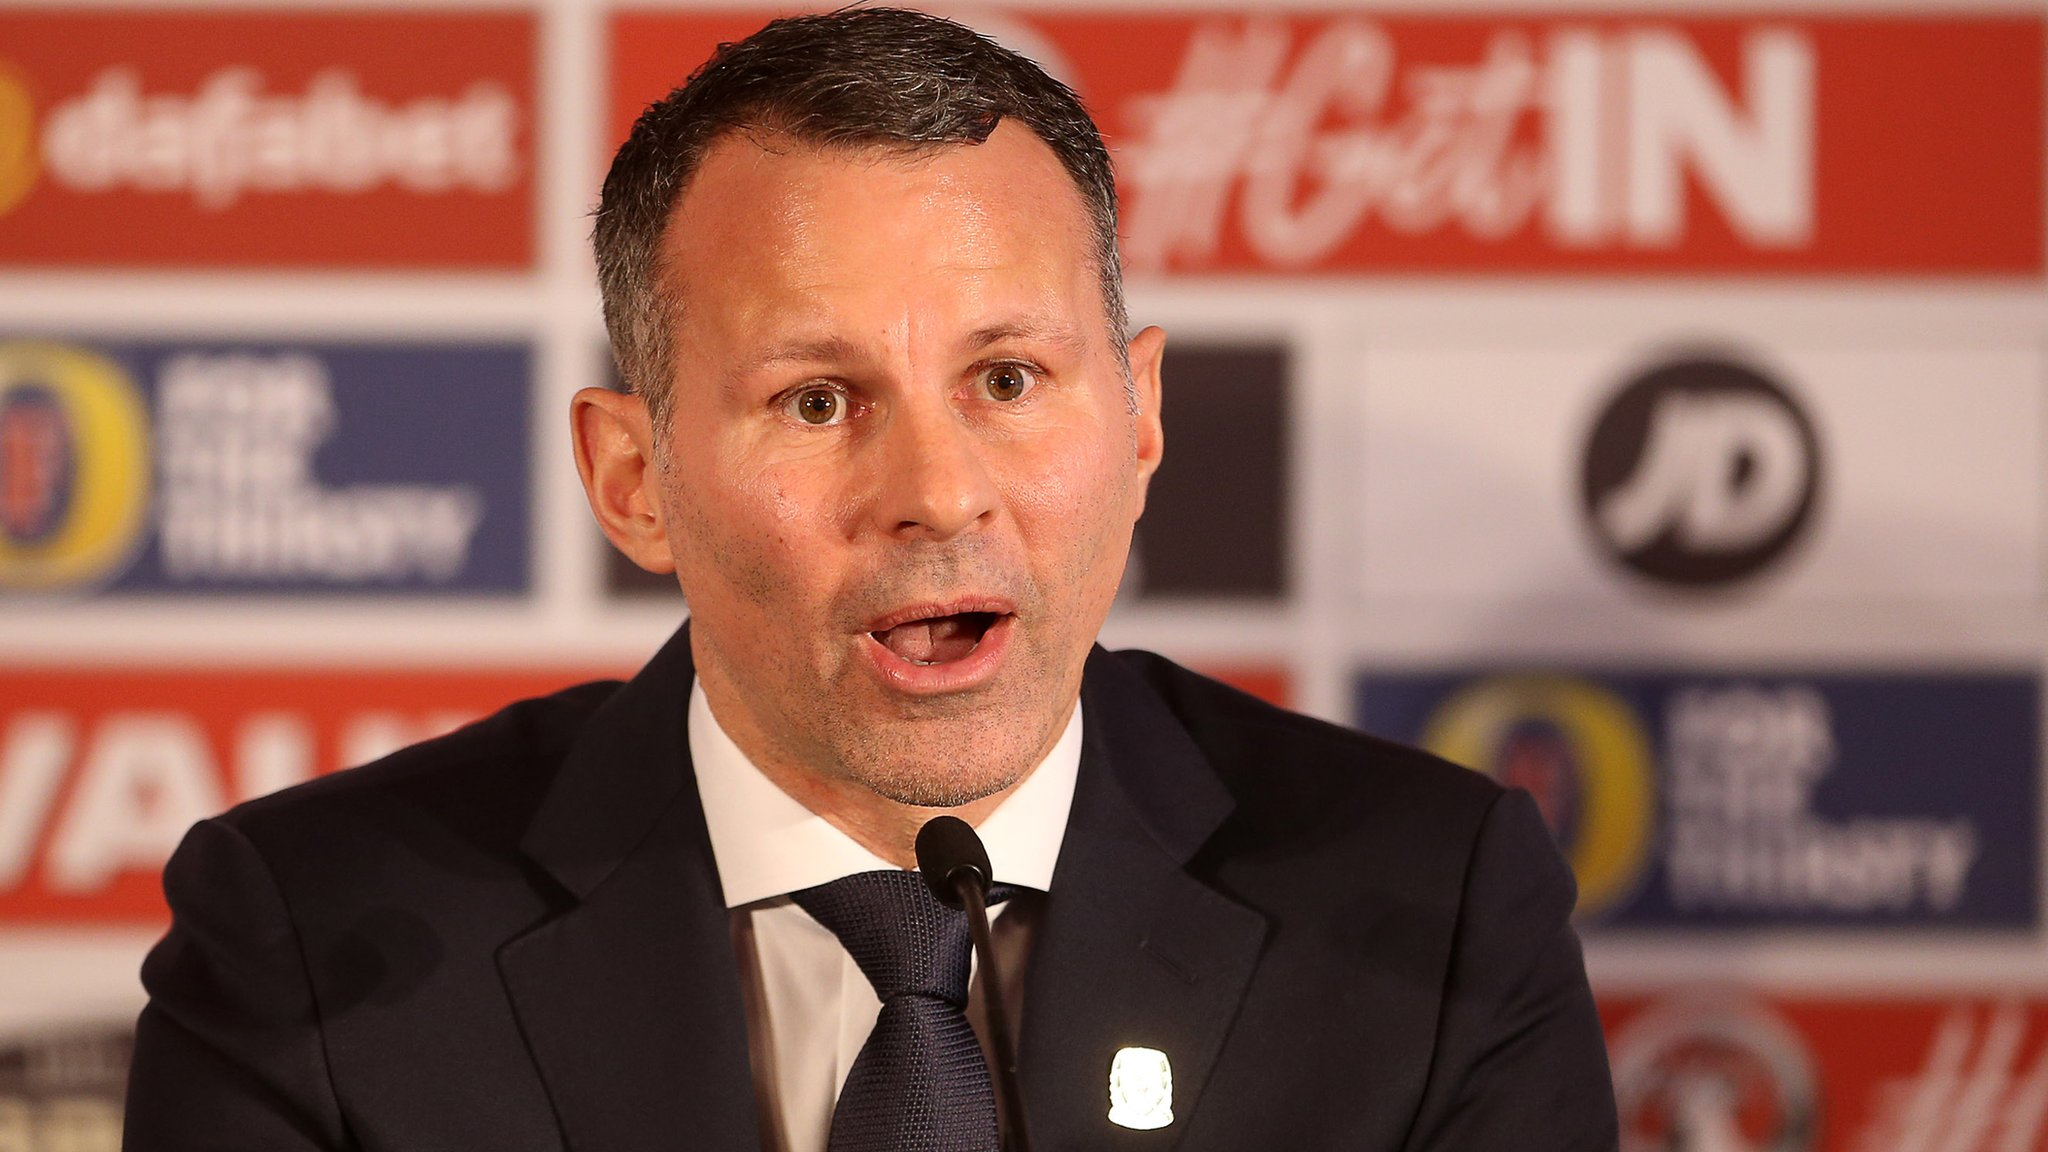 Desire burns inside me and criticism is unfair, says new Wales boss Giggs